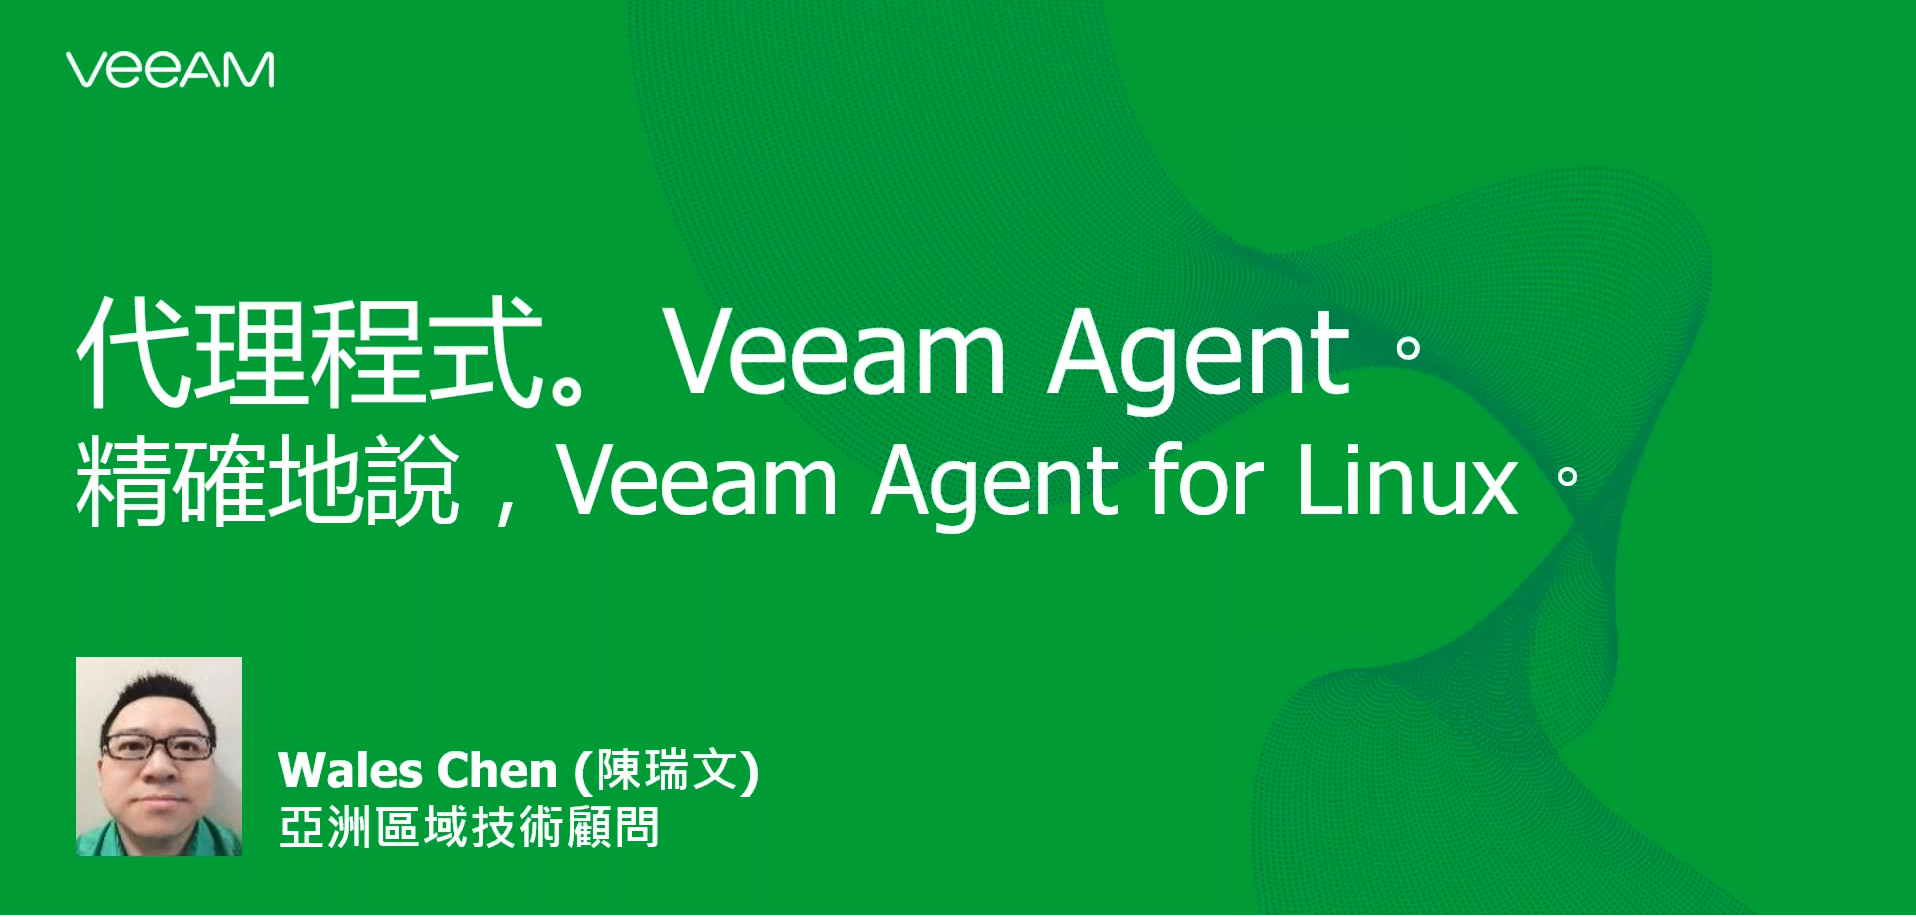 Taiwan: Agent. Veeam Agent. Veeam Agent for Linux, to be precise